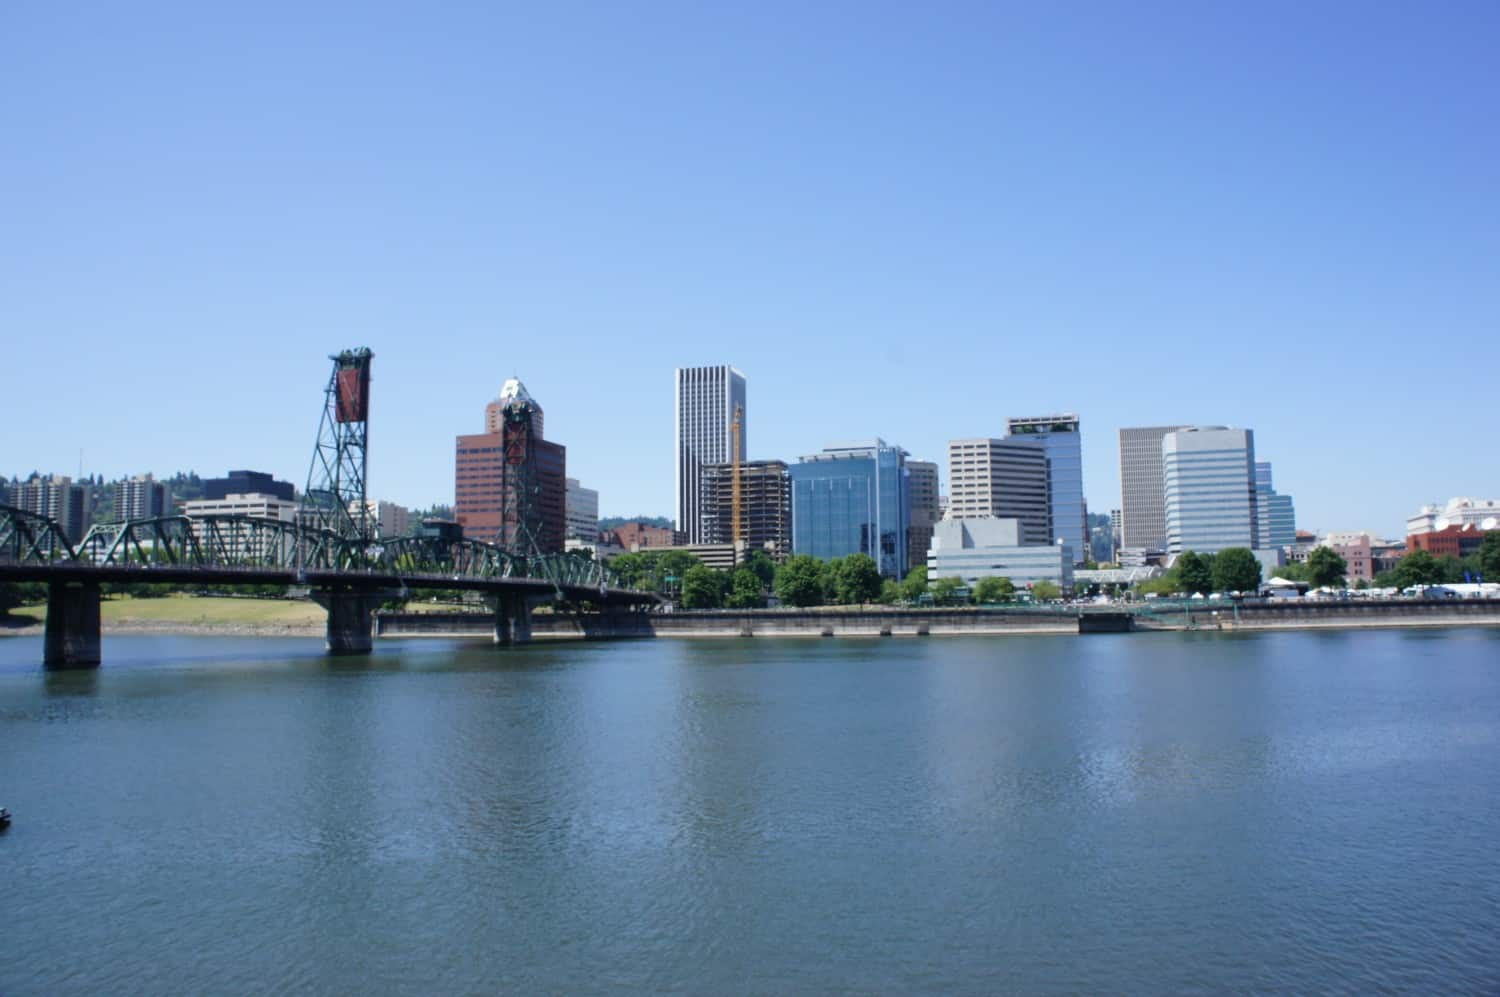 City View - Portland, Oregon